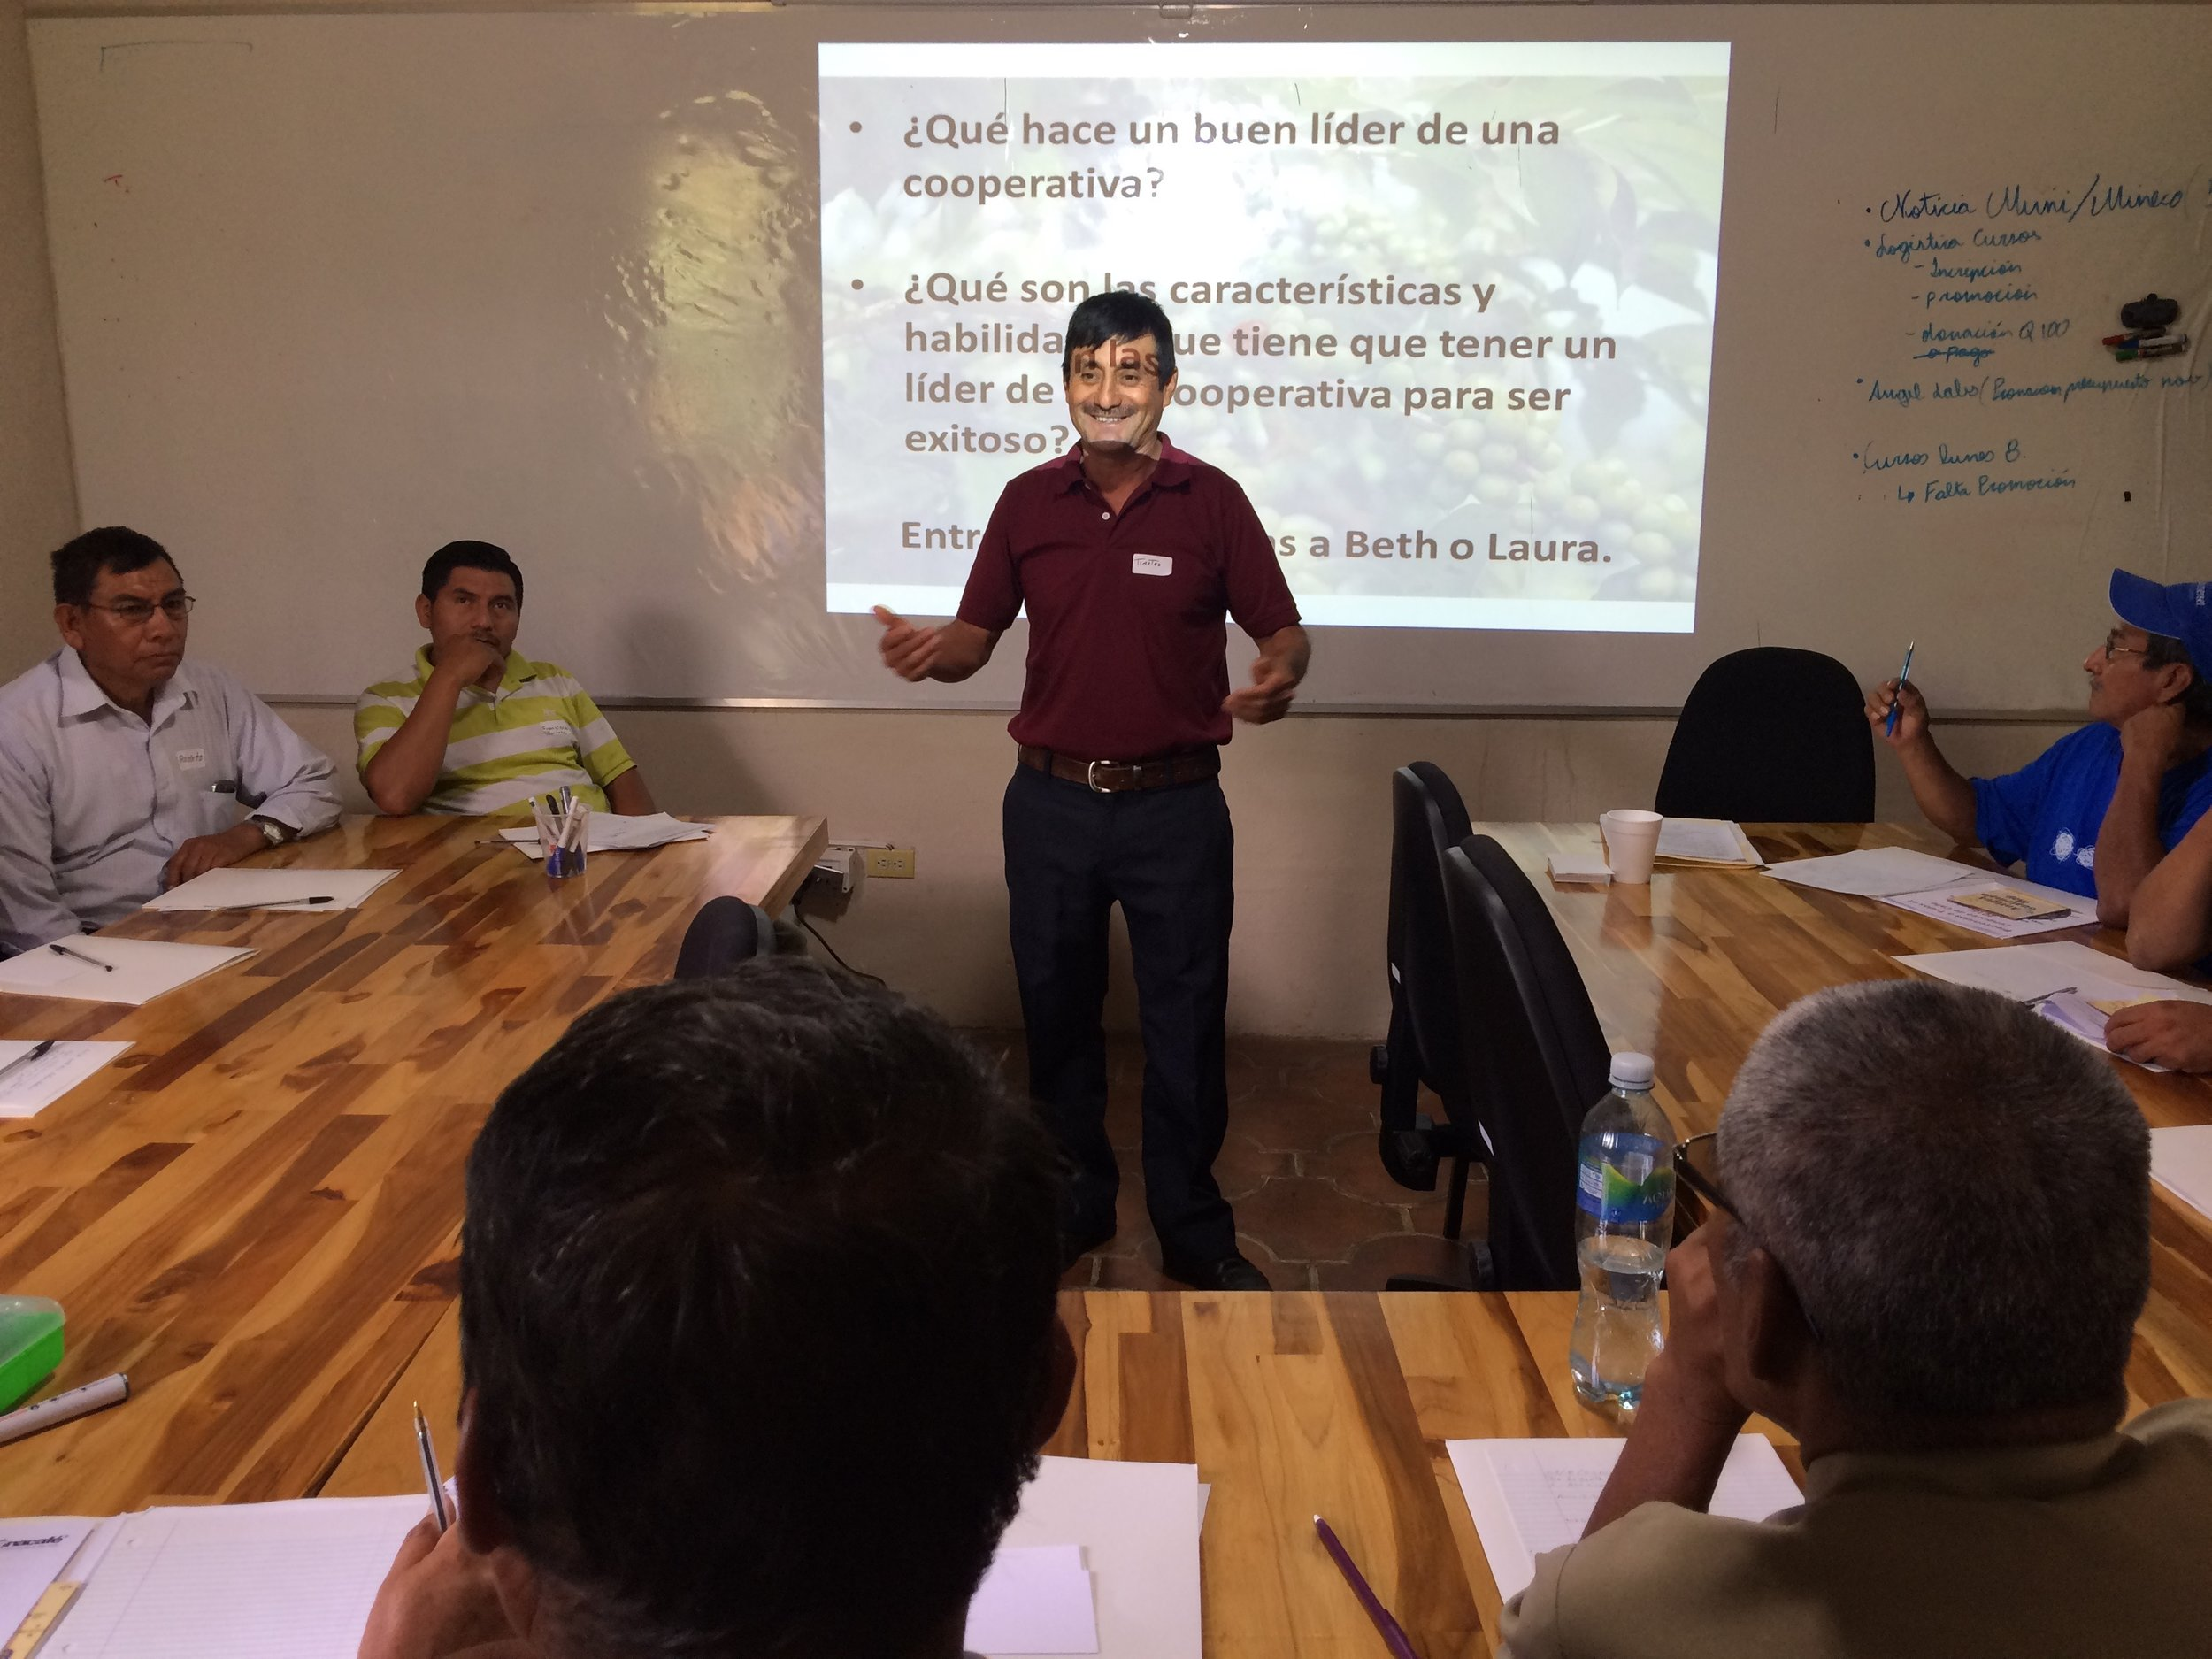 Timoteo, President of San Miguel Escobar Cooperative leading the discussion on Leadership